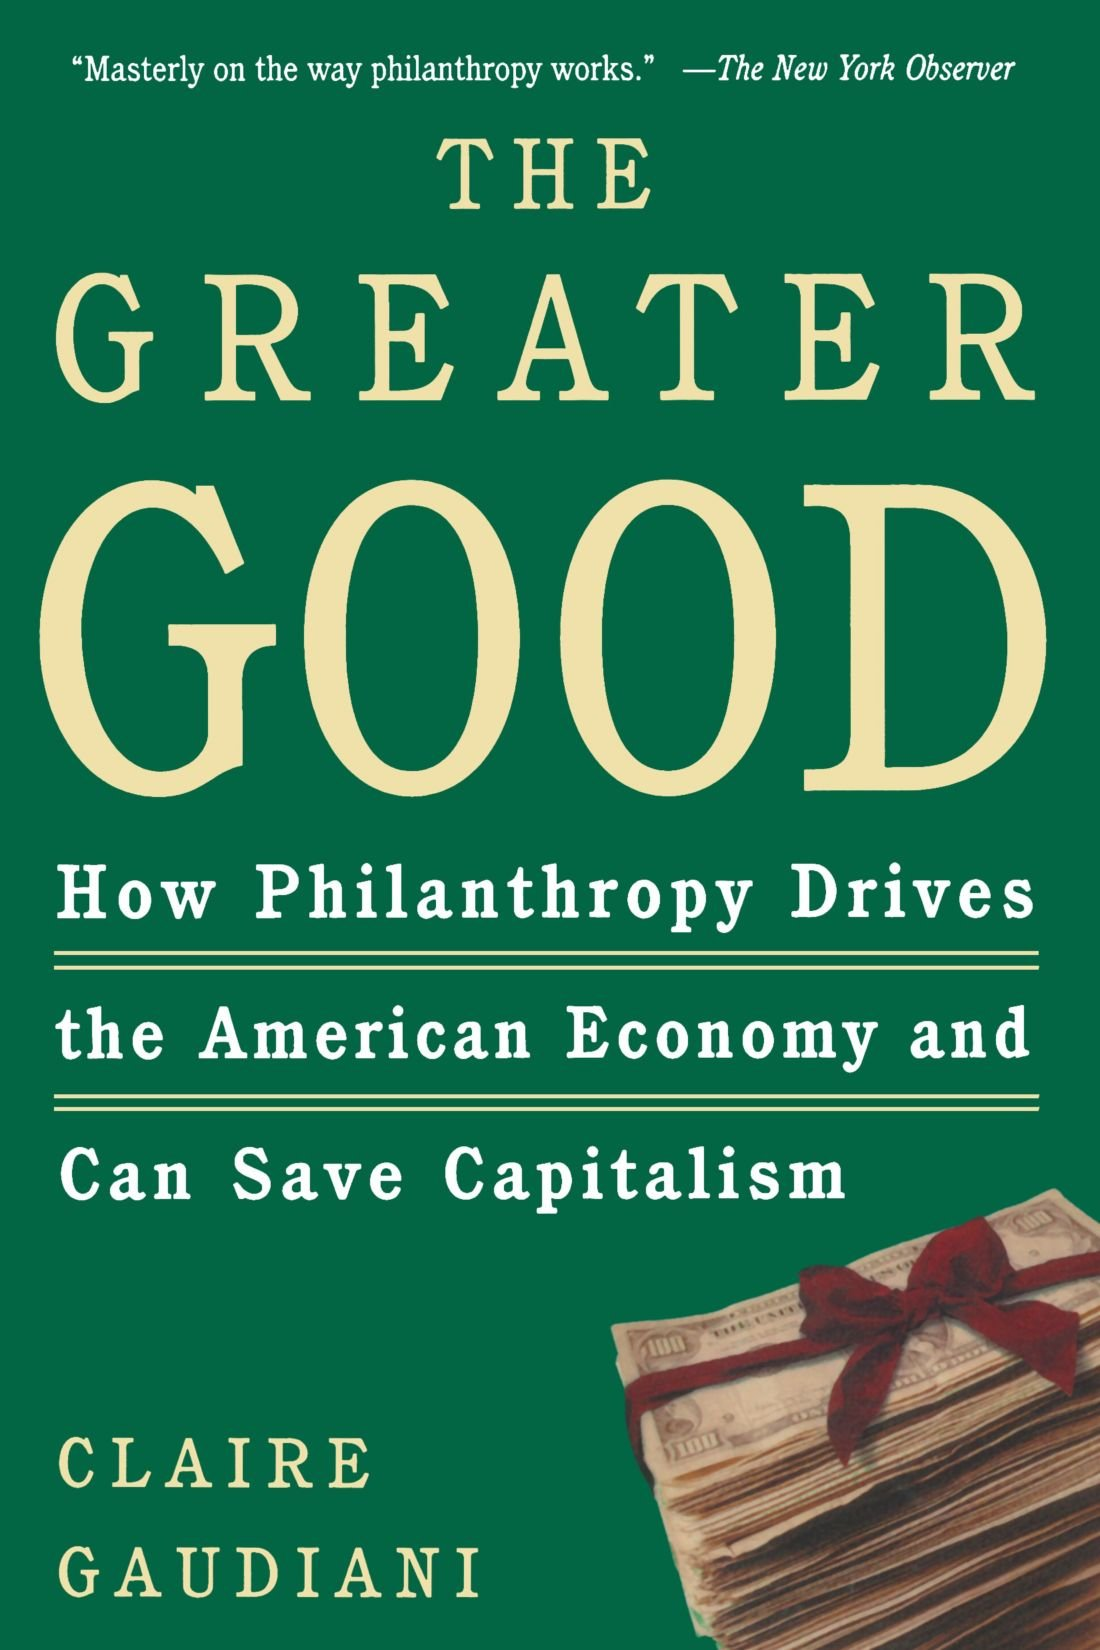 Download The Greater Good: How Philanthropy Drives the American Economy and Can Save Capitalism pdf